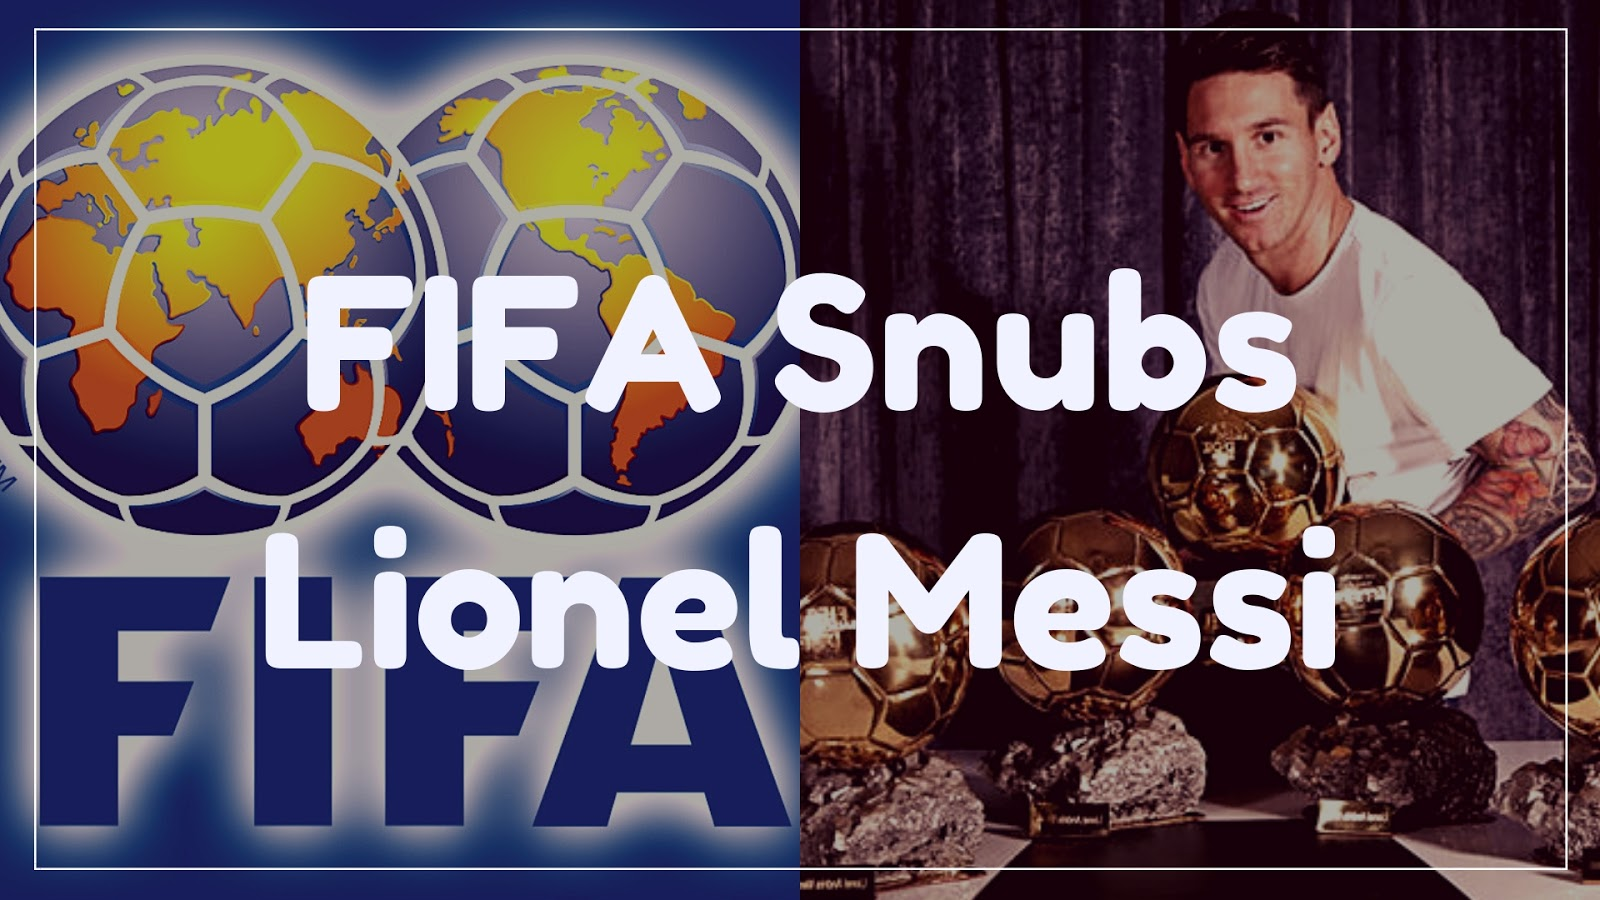 FIFA snubs Lionel Messi with Award Snub